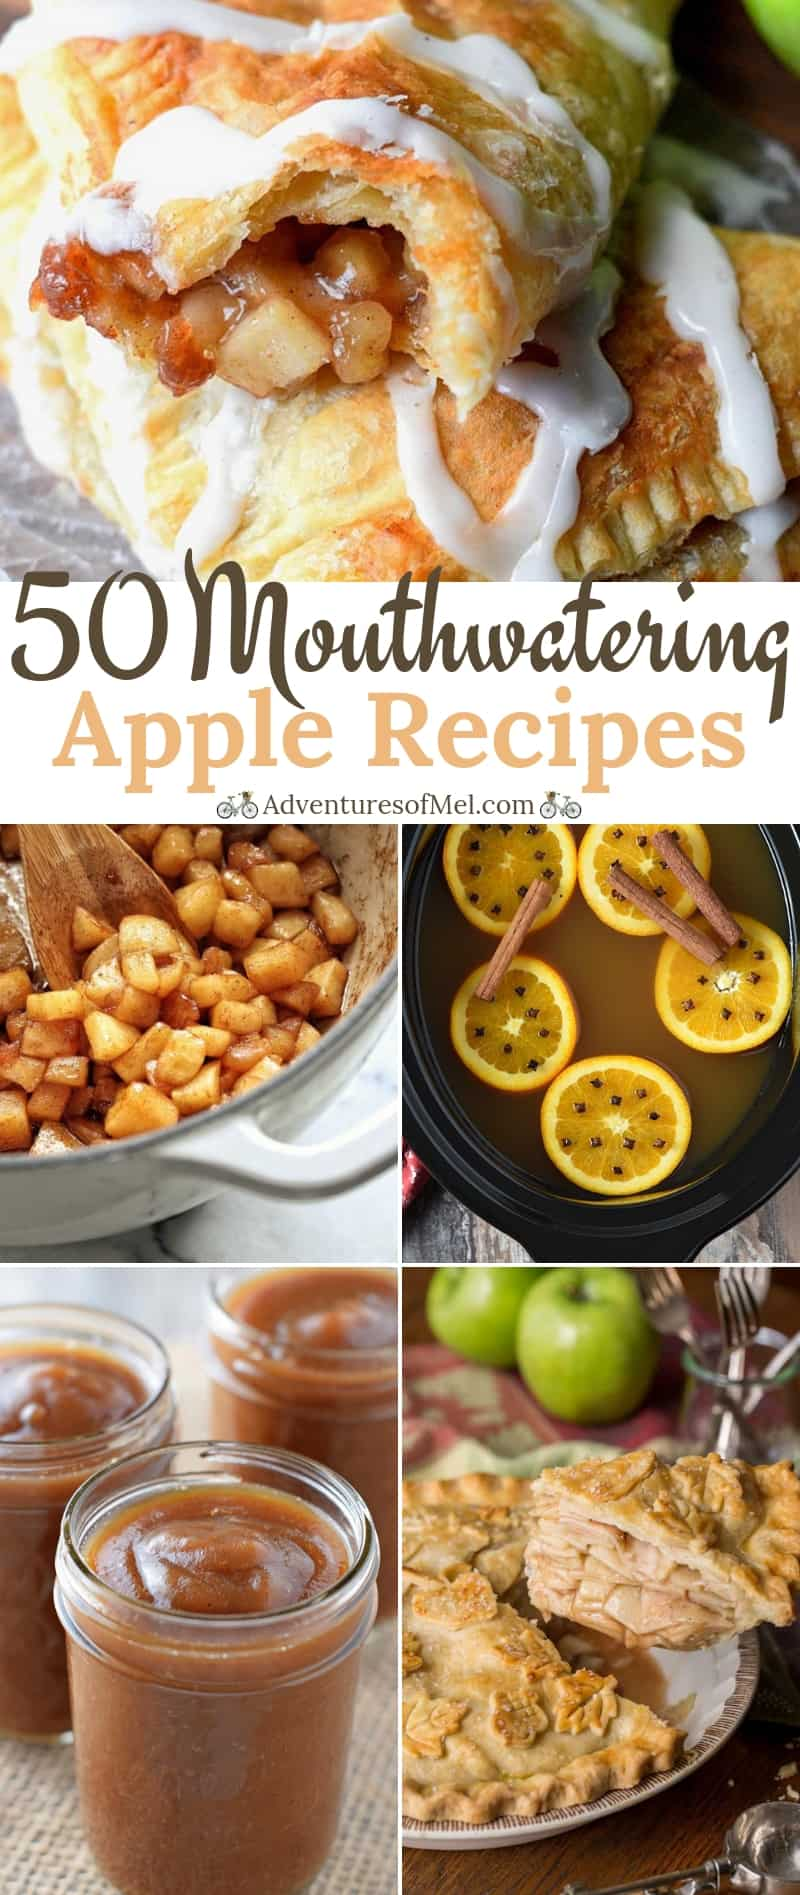 Mouthwatering apple recipes for what to do with apples